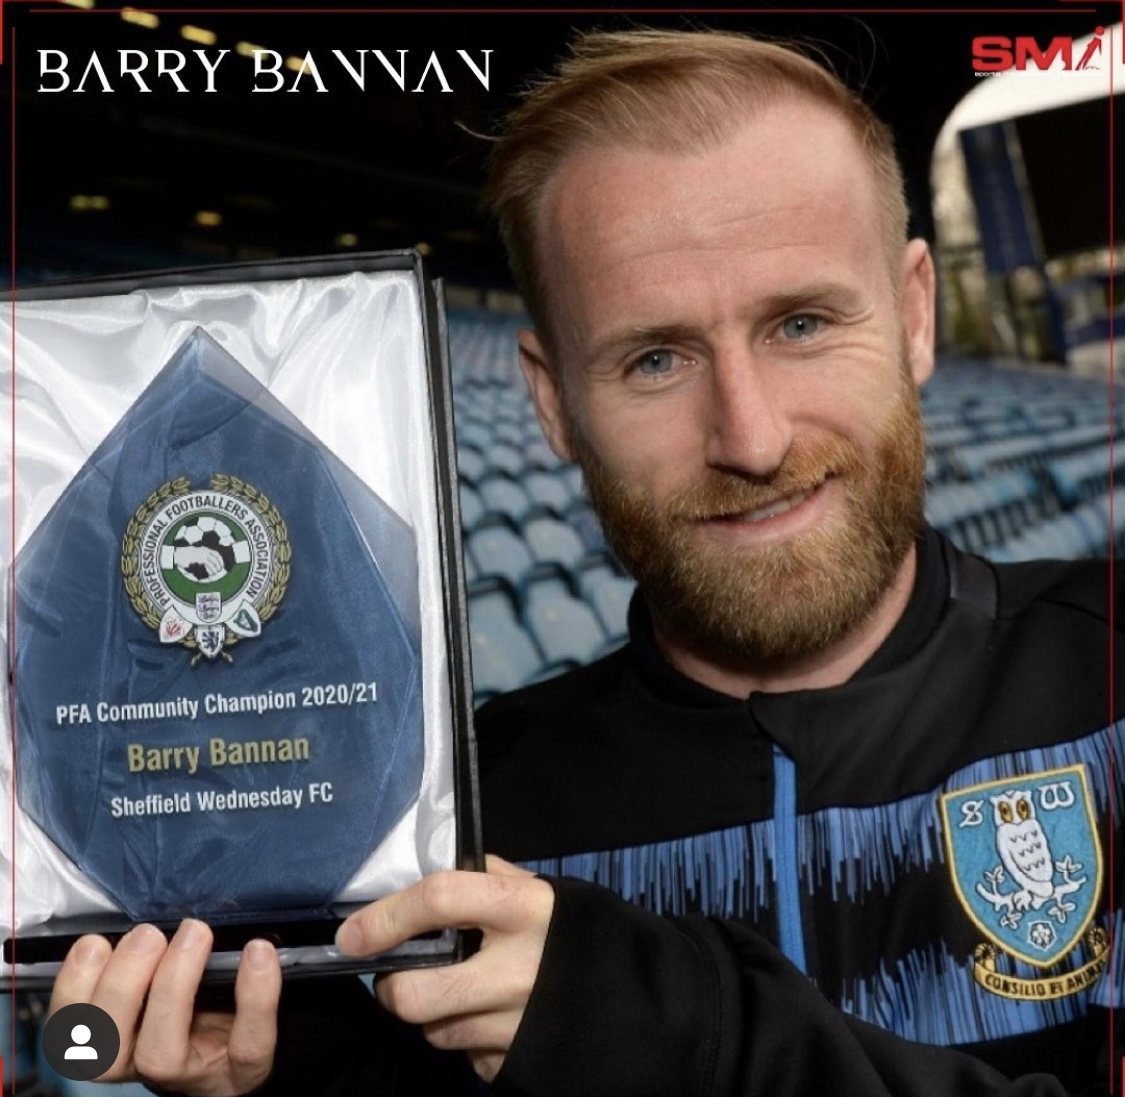 Barry Bannan Community Player of the year